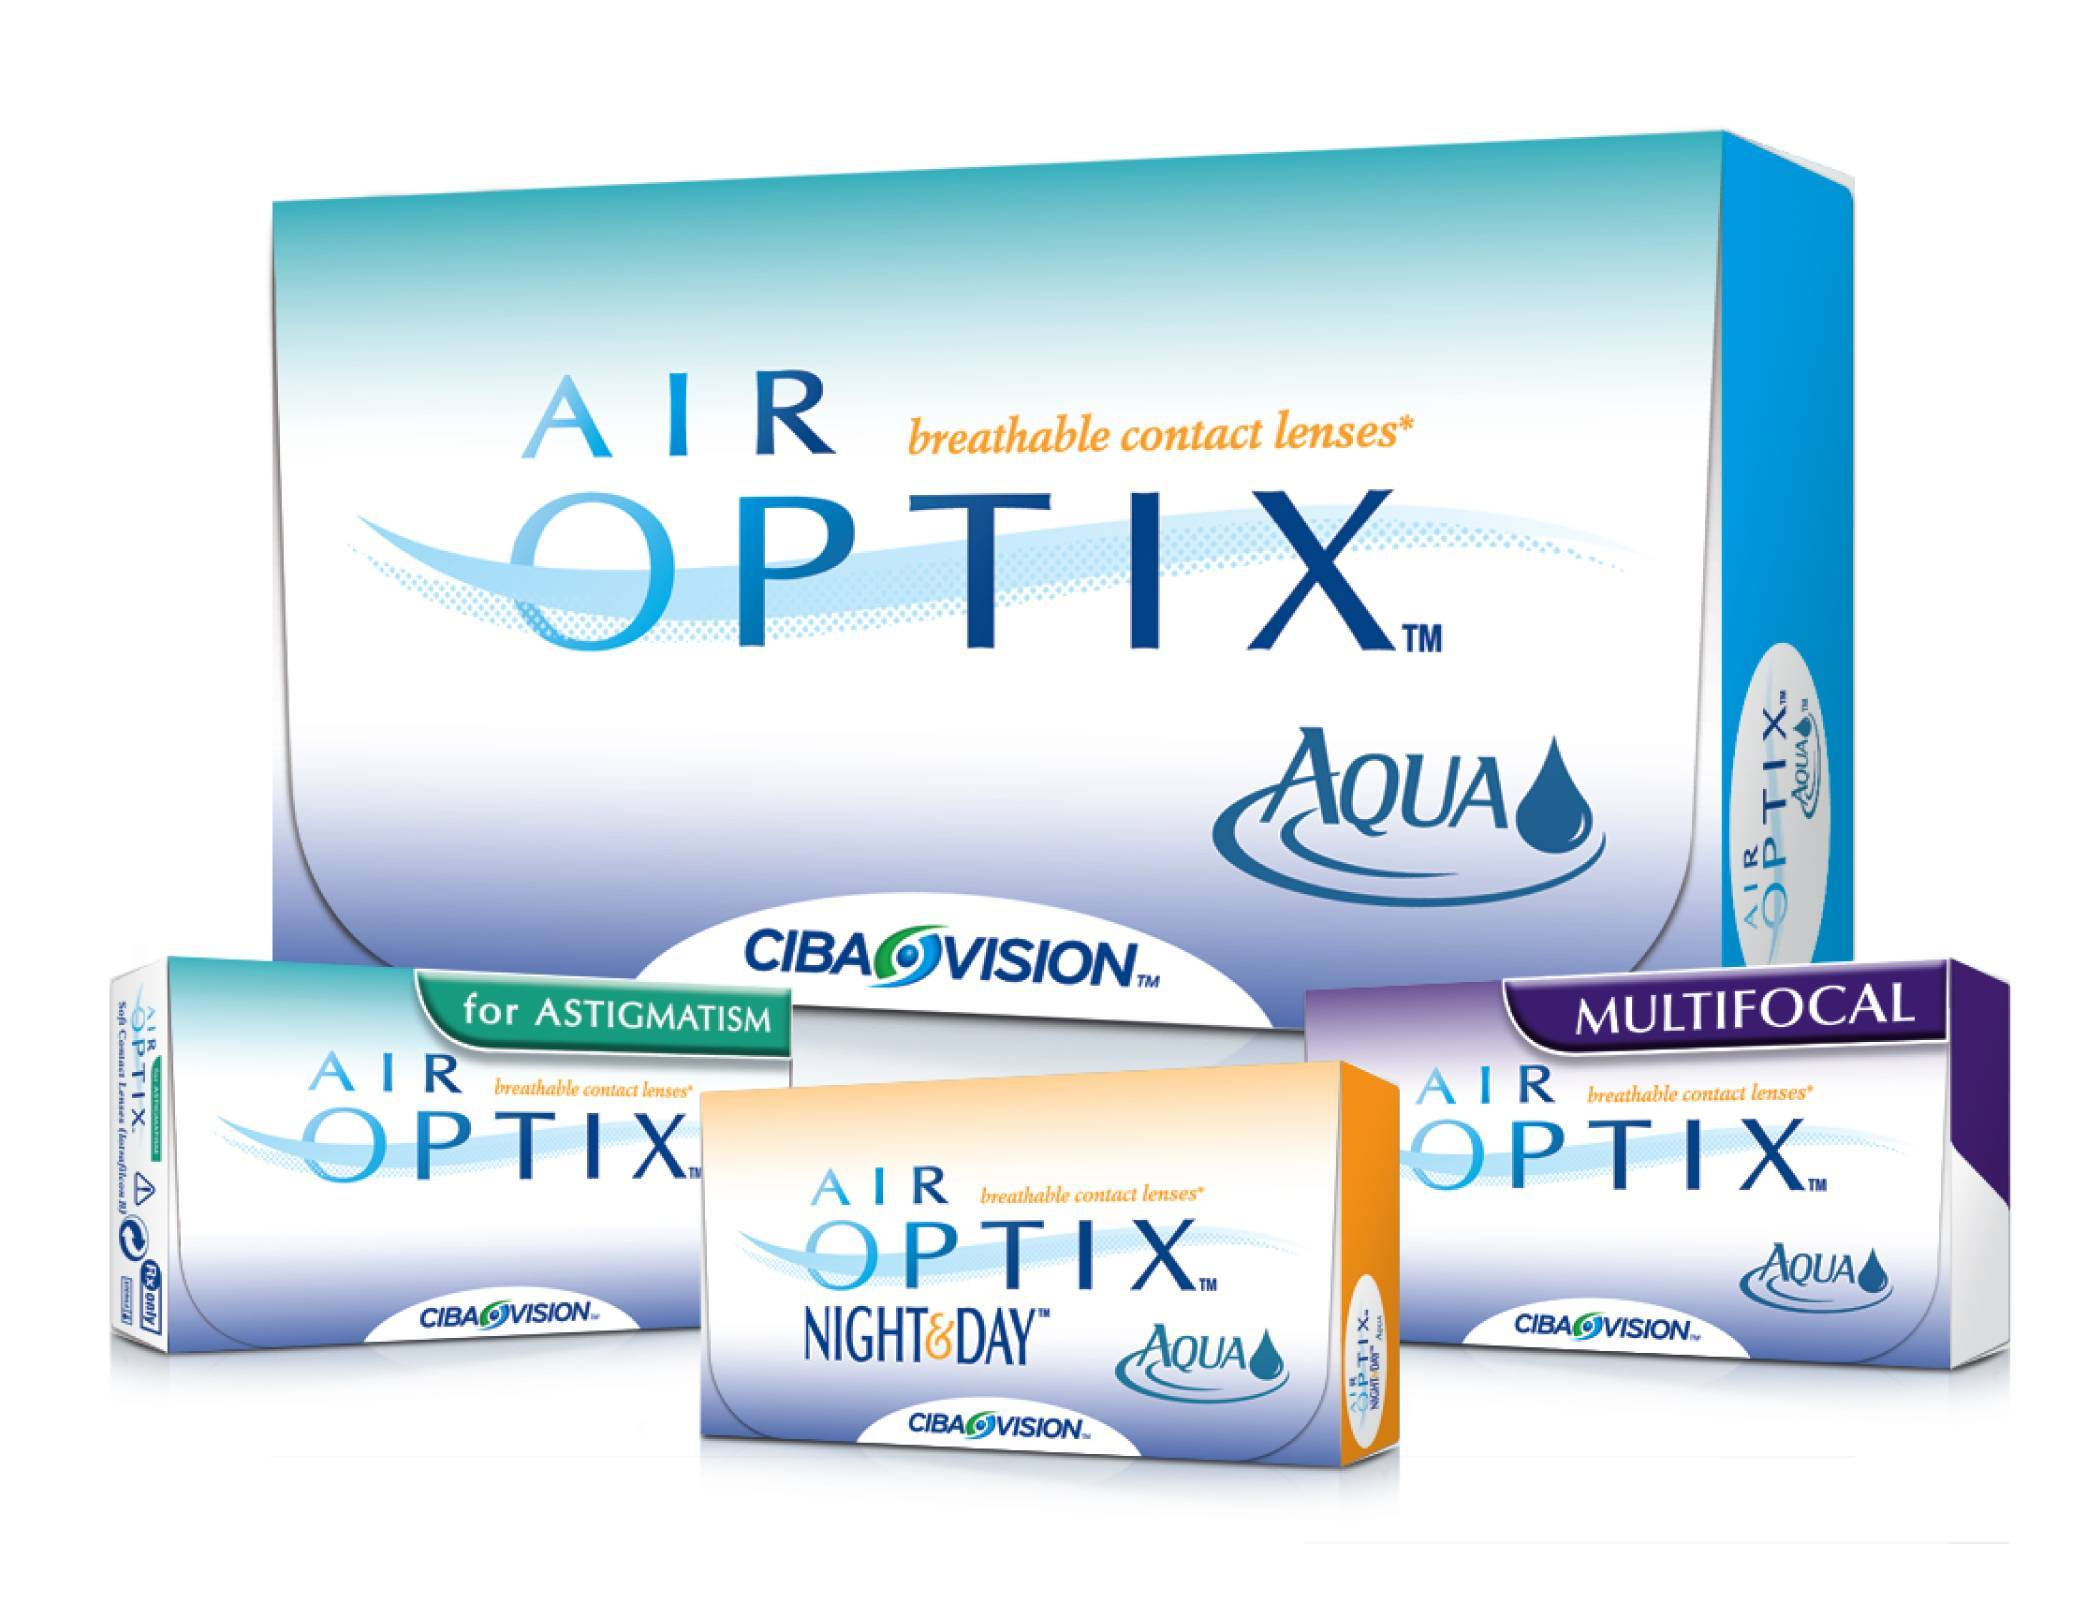 AirOptix contact lenses from optometrist leesburg GA